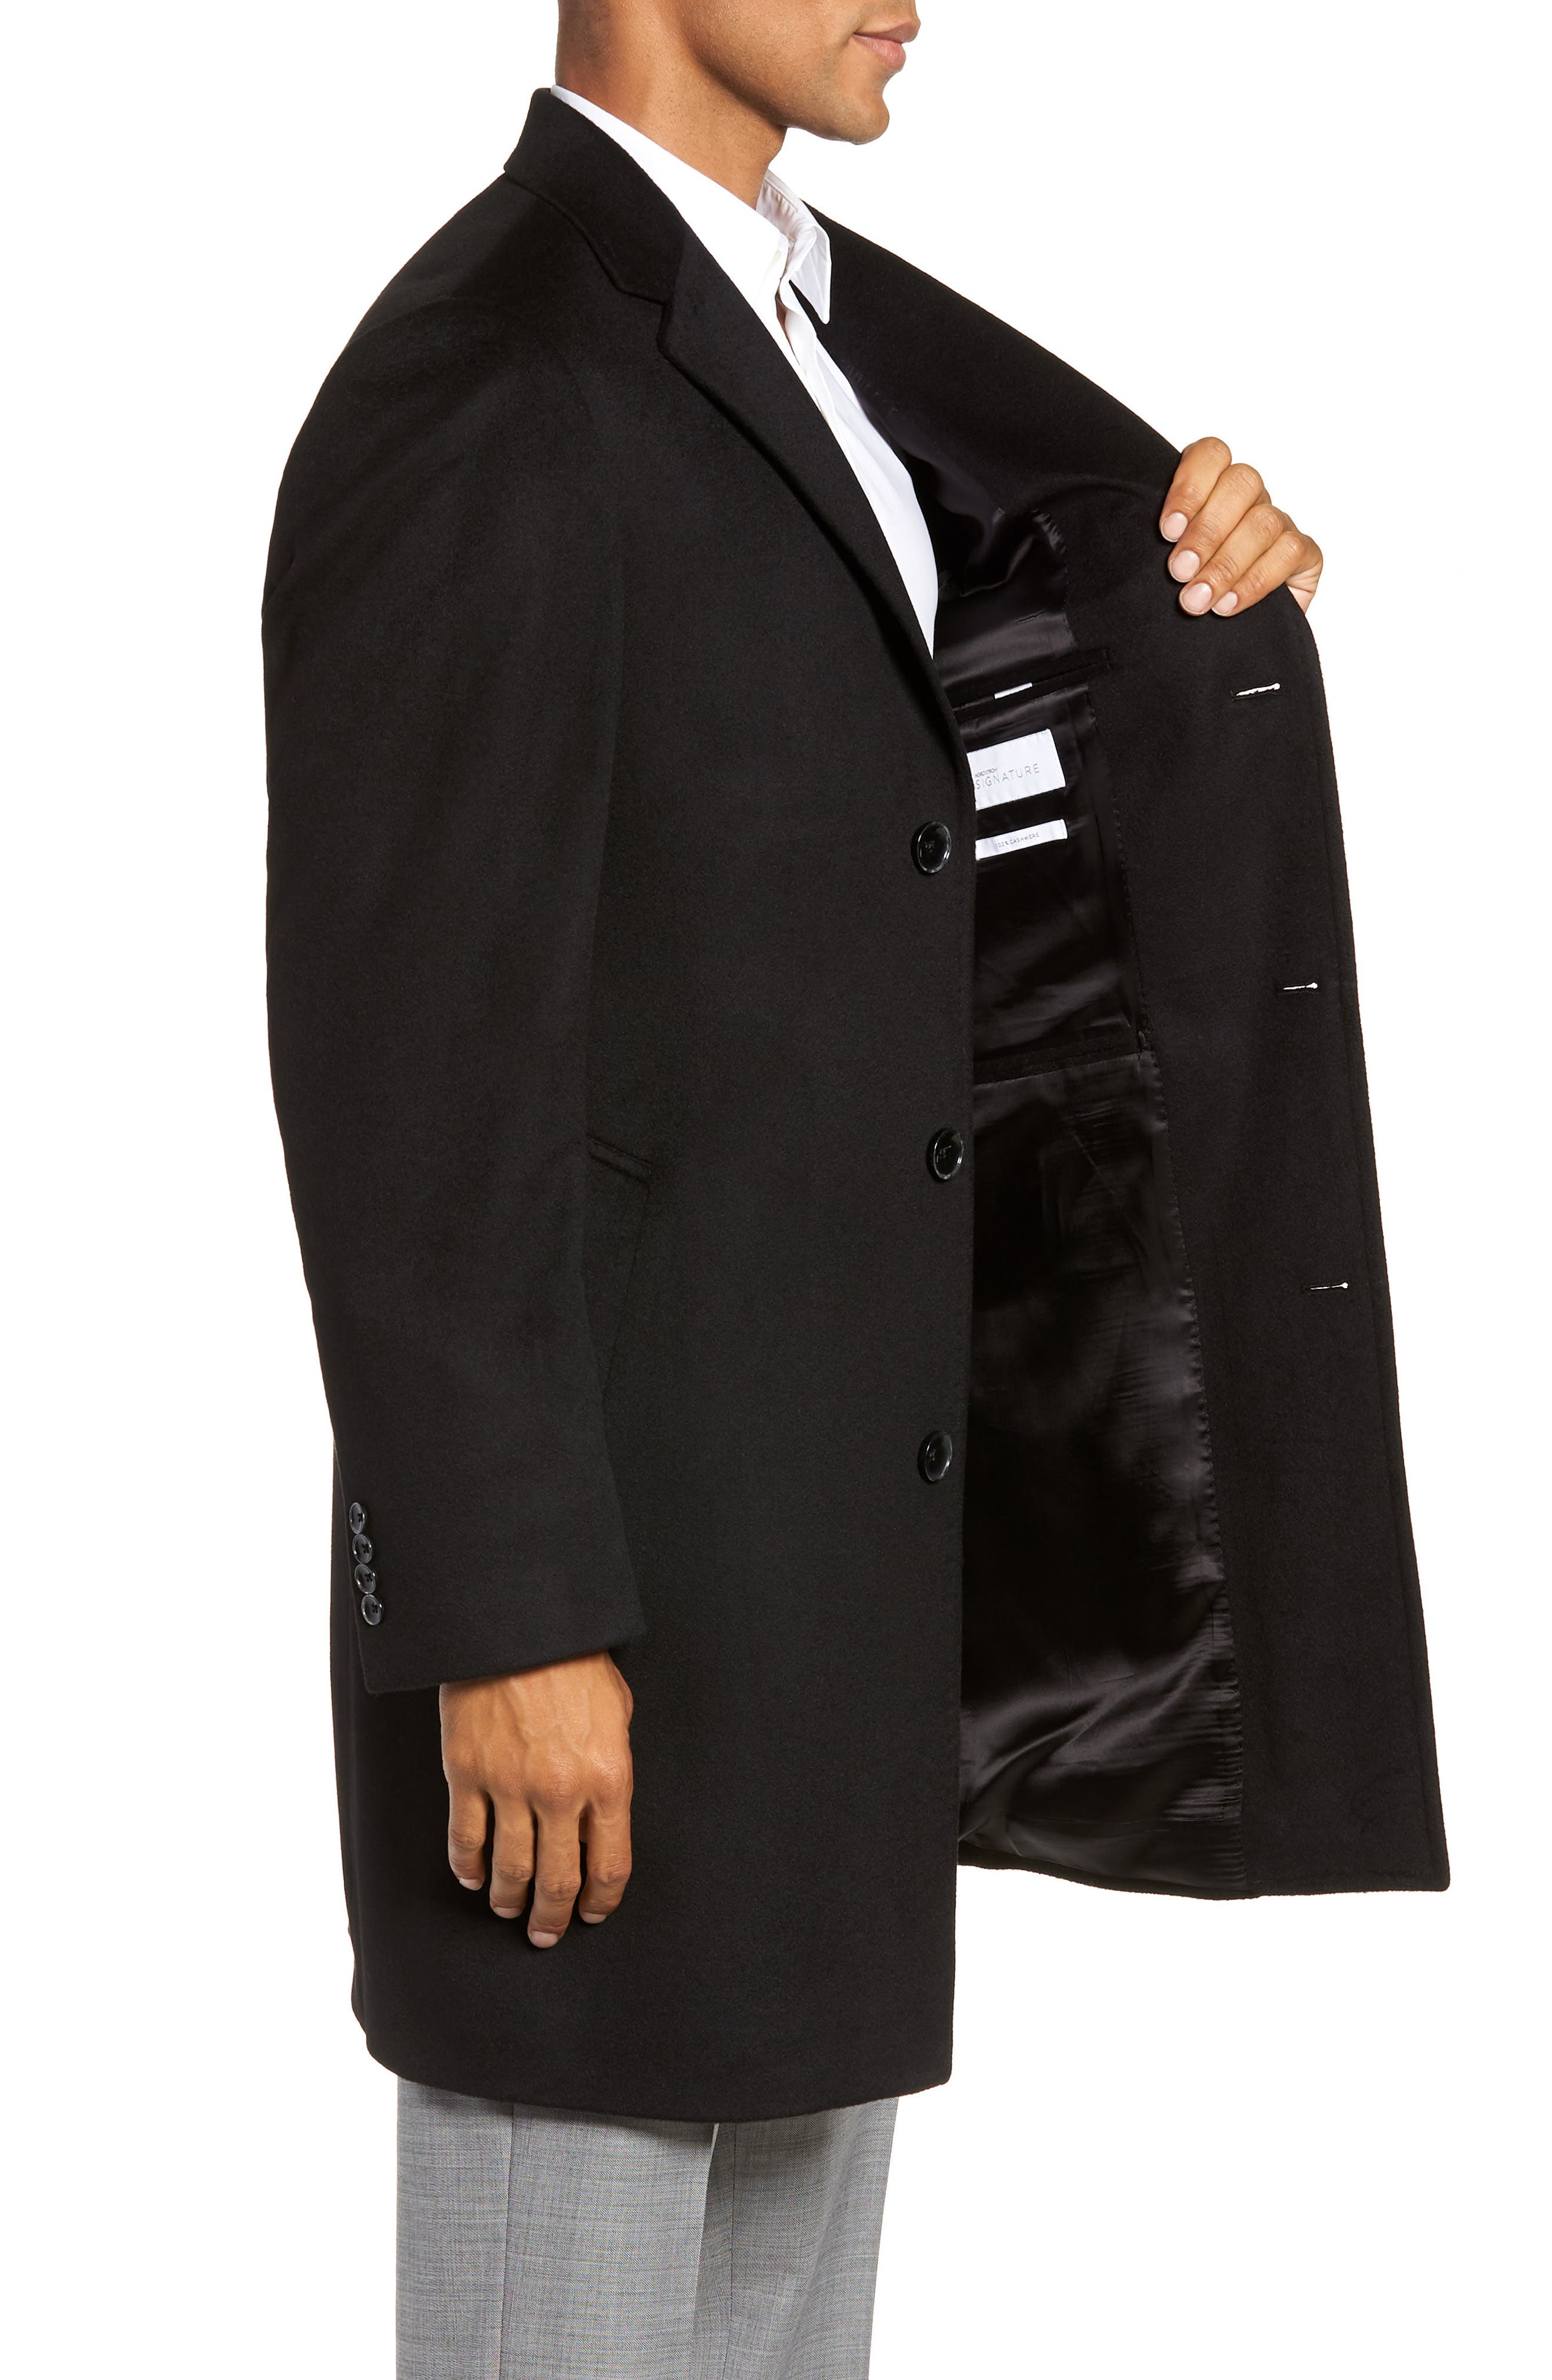 Darien Solid Cashmere Overcoat,                             Alternate thumbnail 3, color,                             BLACK